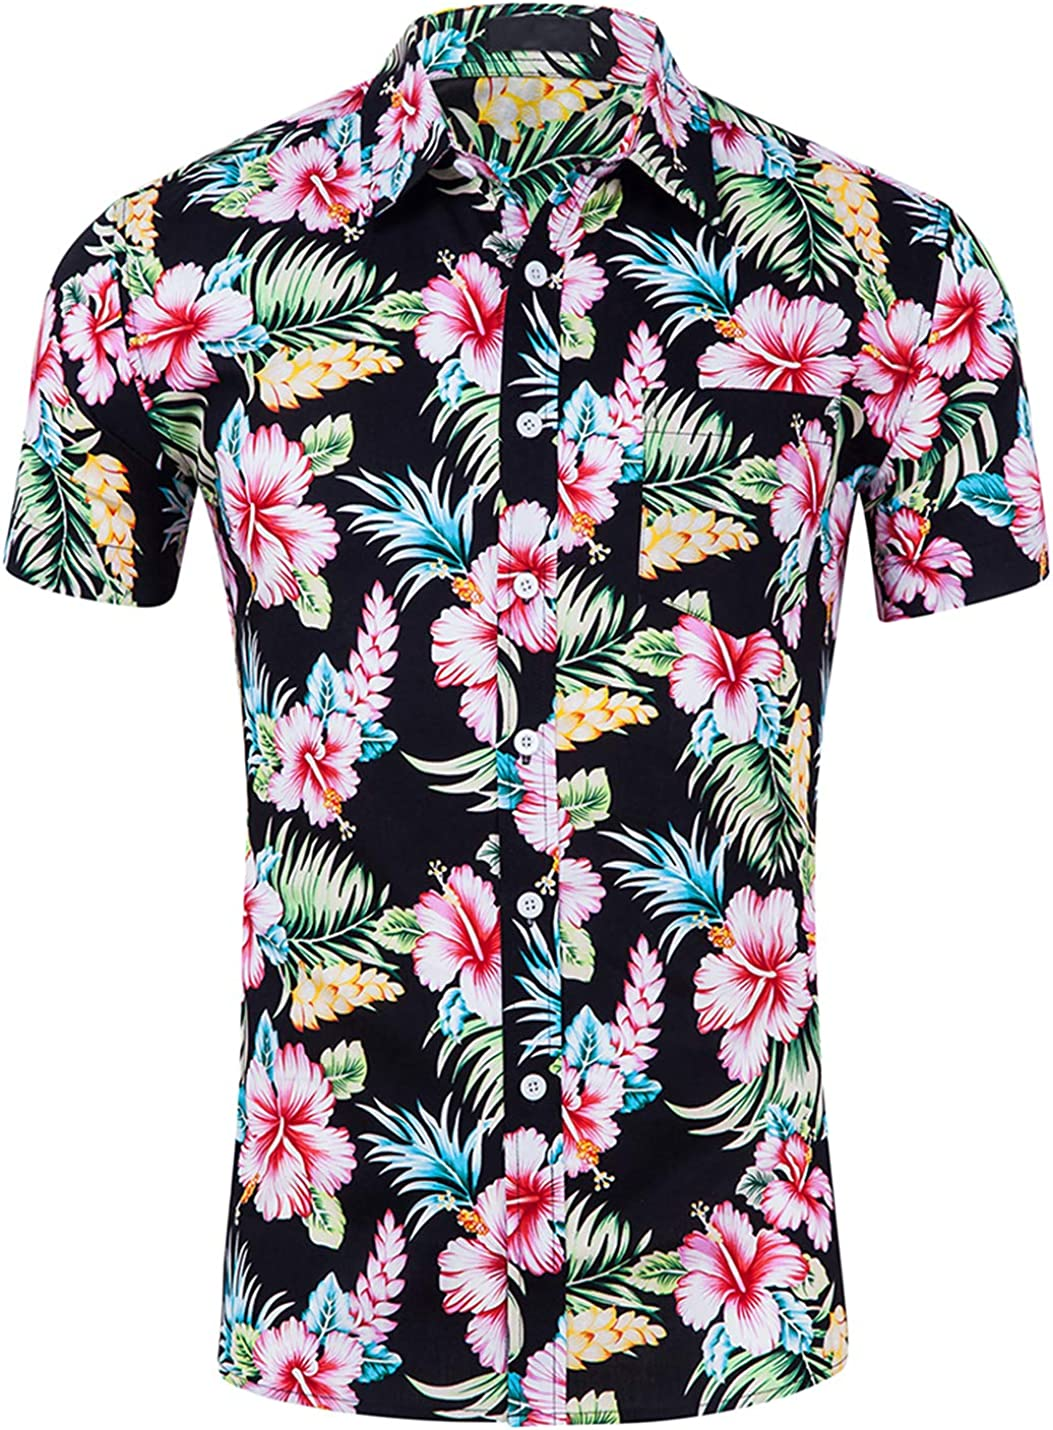 Max 63% OFF Yeokou Men's Cotton Short Sleeve Print Button Down Floral Hawaii Special sale item